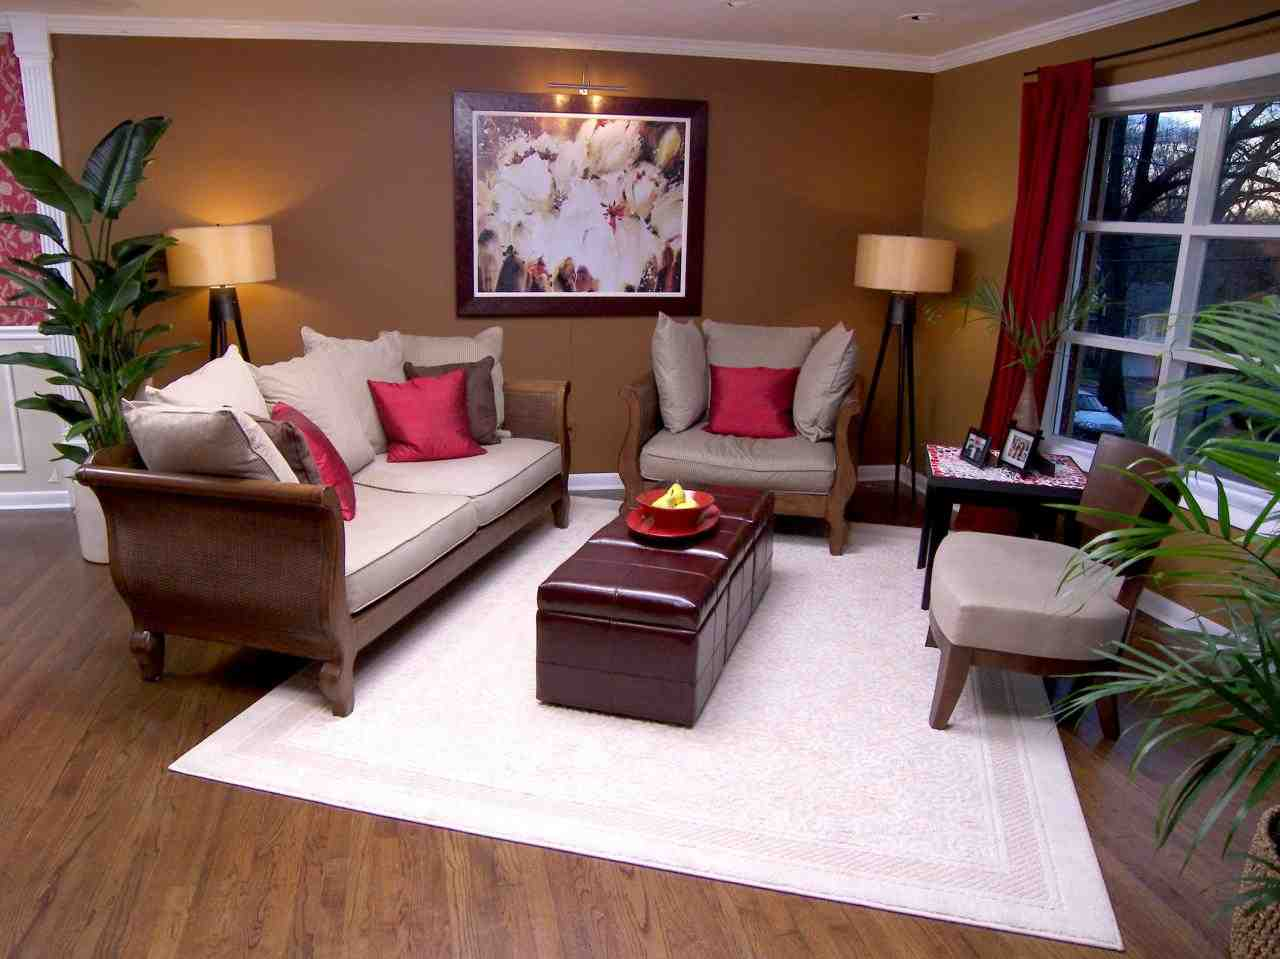 Feng Shui Living Room Style for Peace and Prosperity - Decor ...